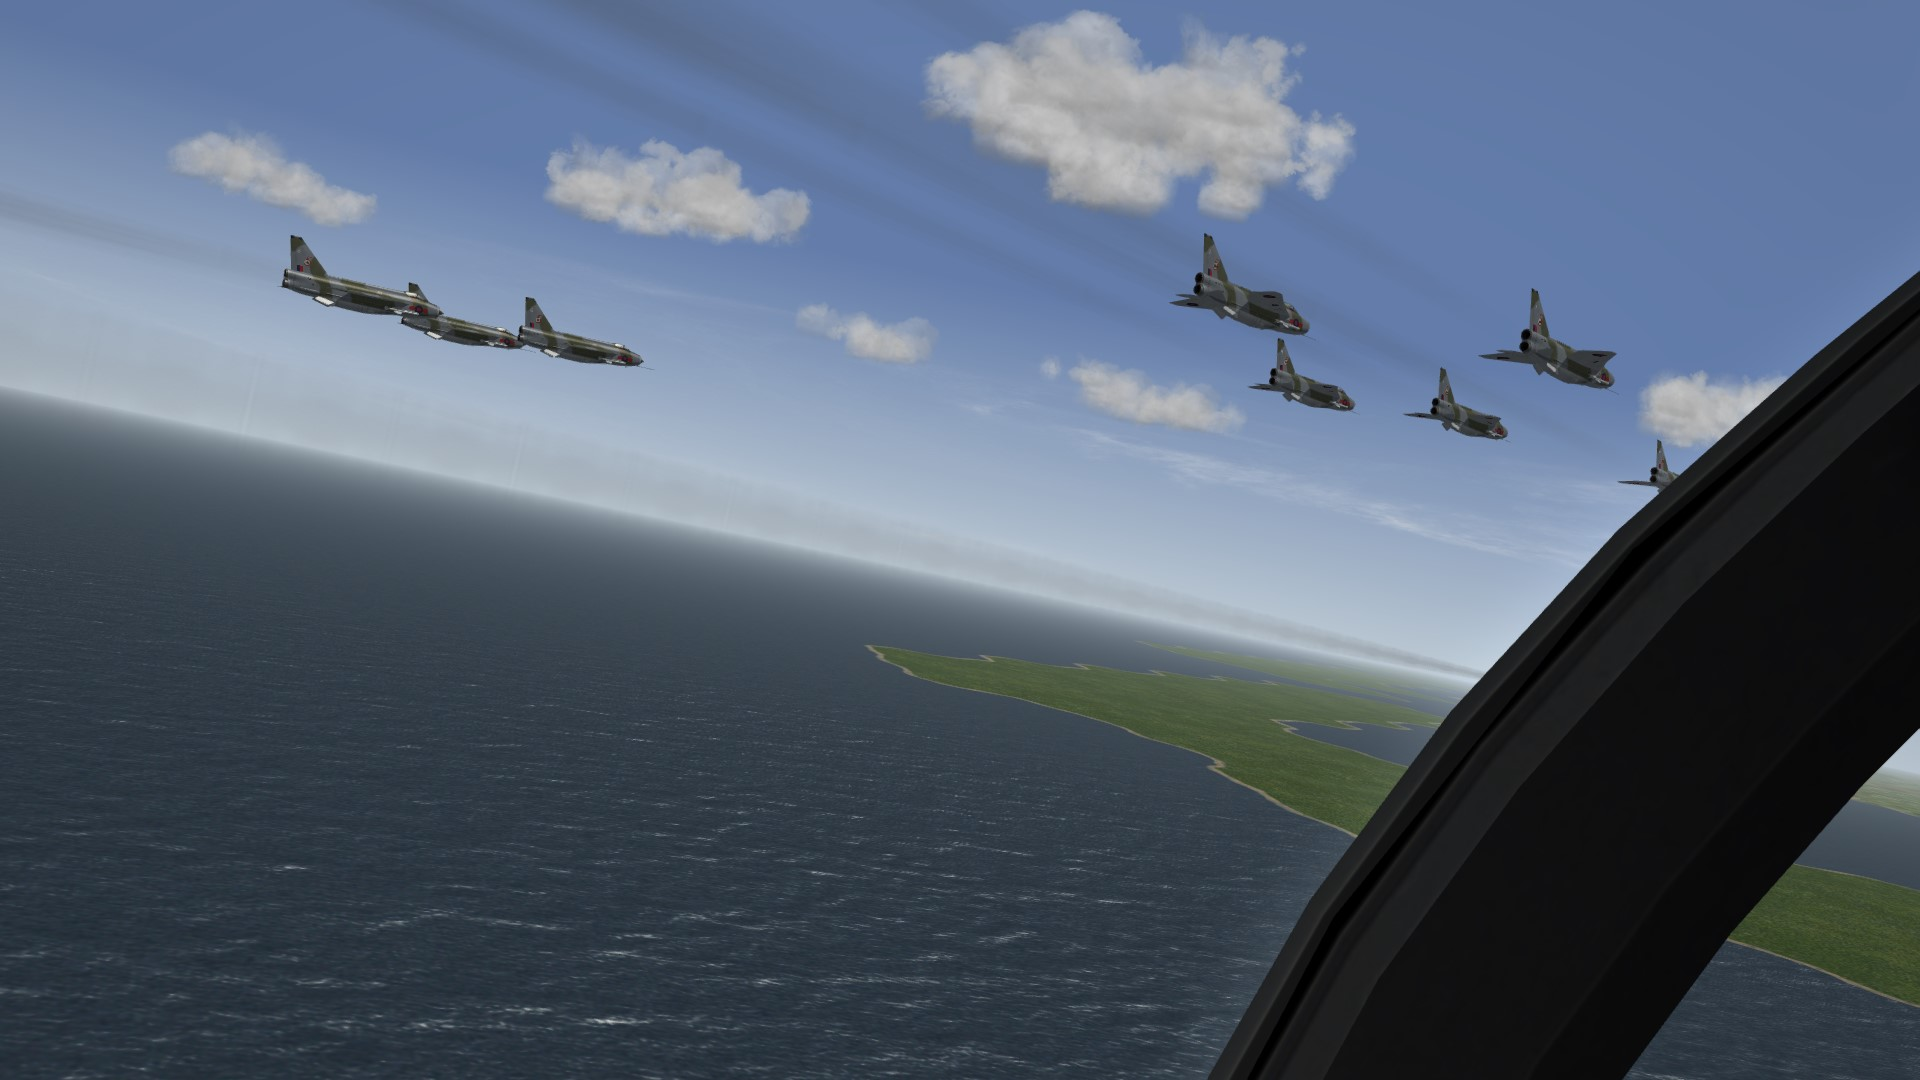 Strike Fighters 2: The Last of the Lightnings - Thirdwire